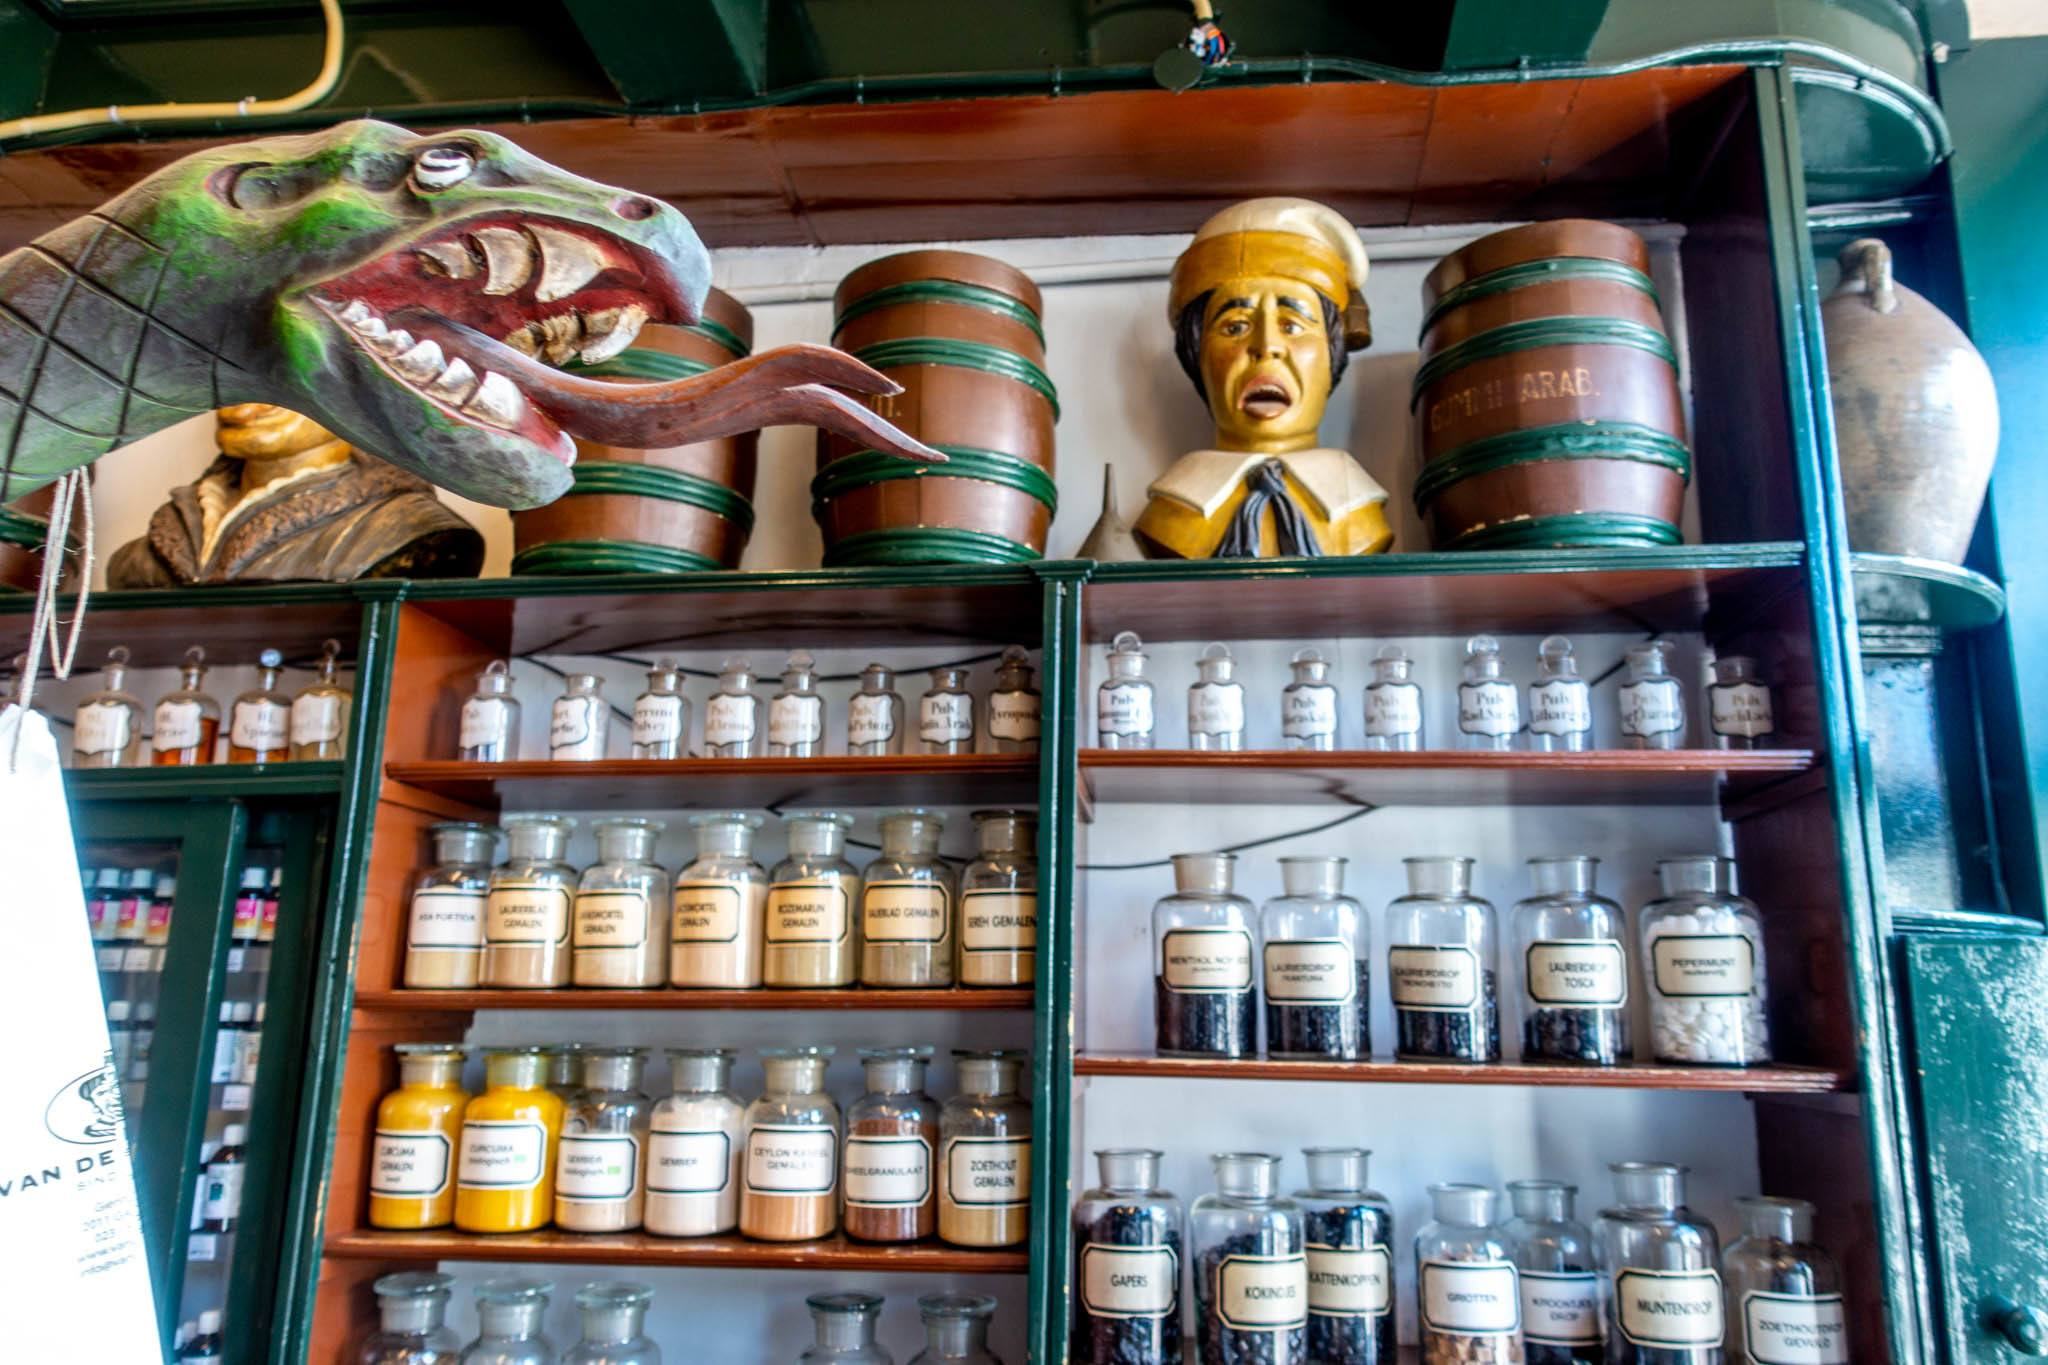 Apothecary bottles on shelves inside old-time pharmacy